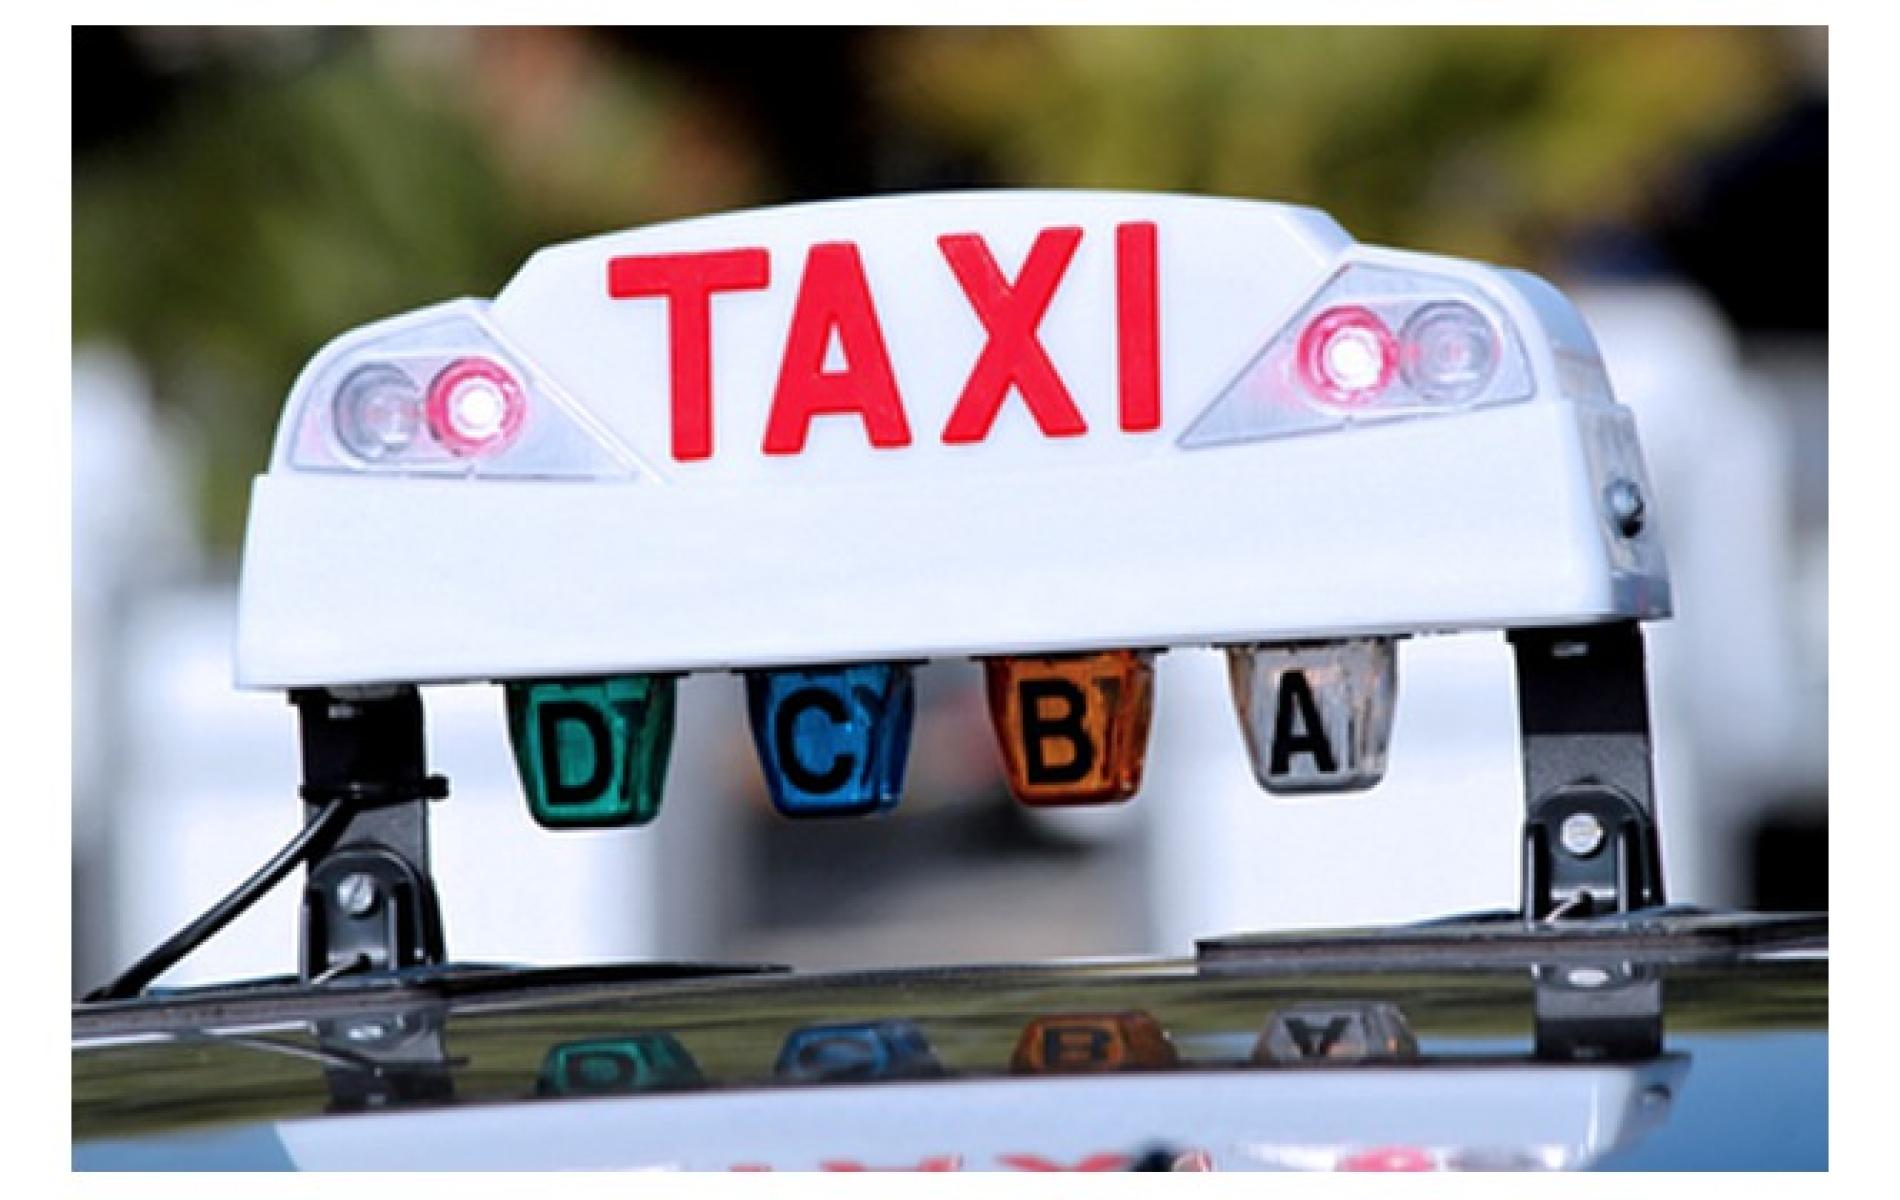 TAXI BOOKINGS